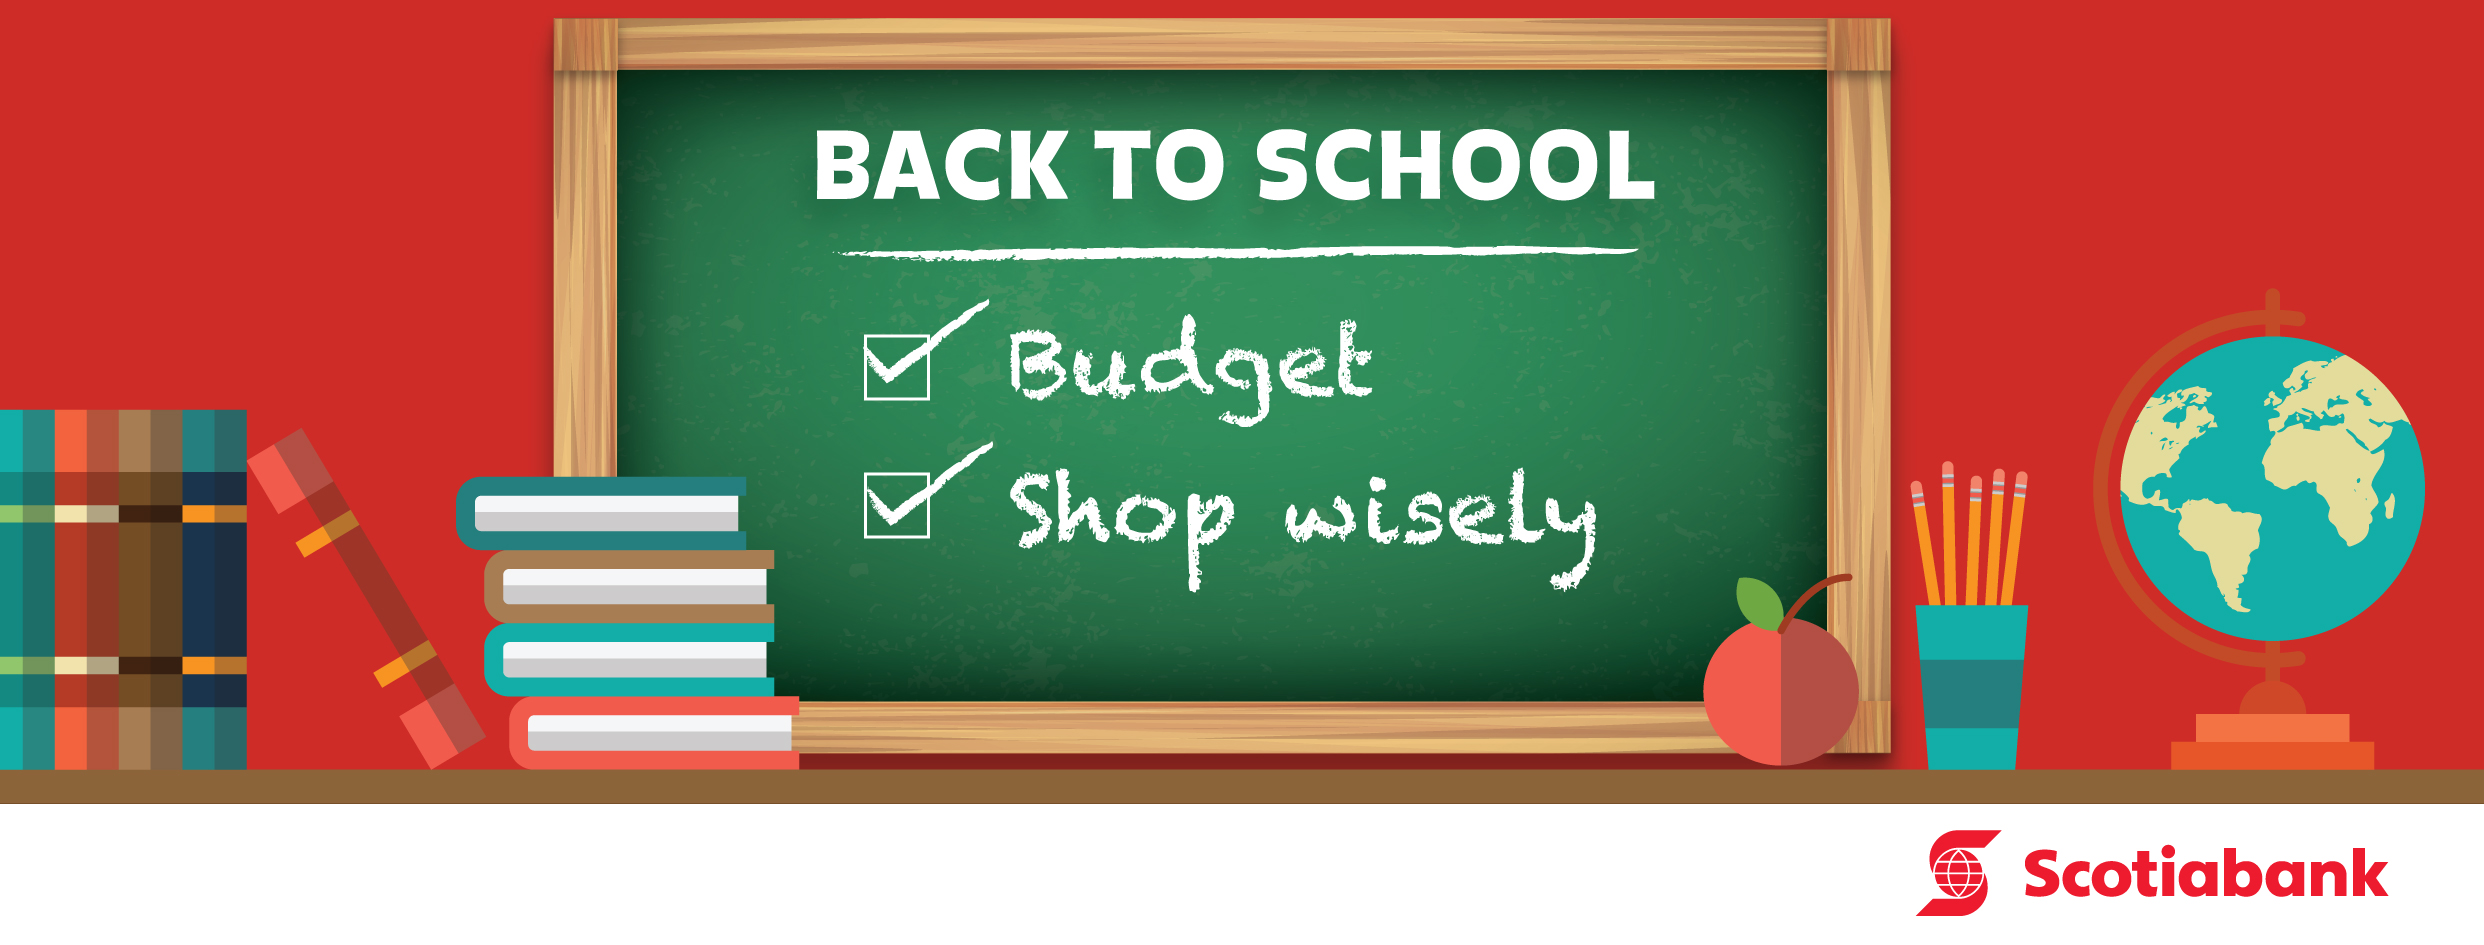 scotiabank back to school fb cover